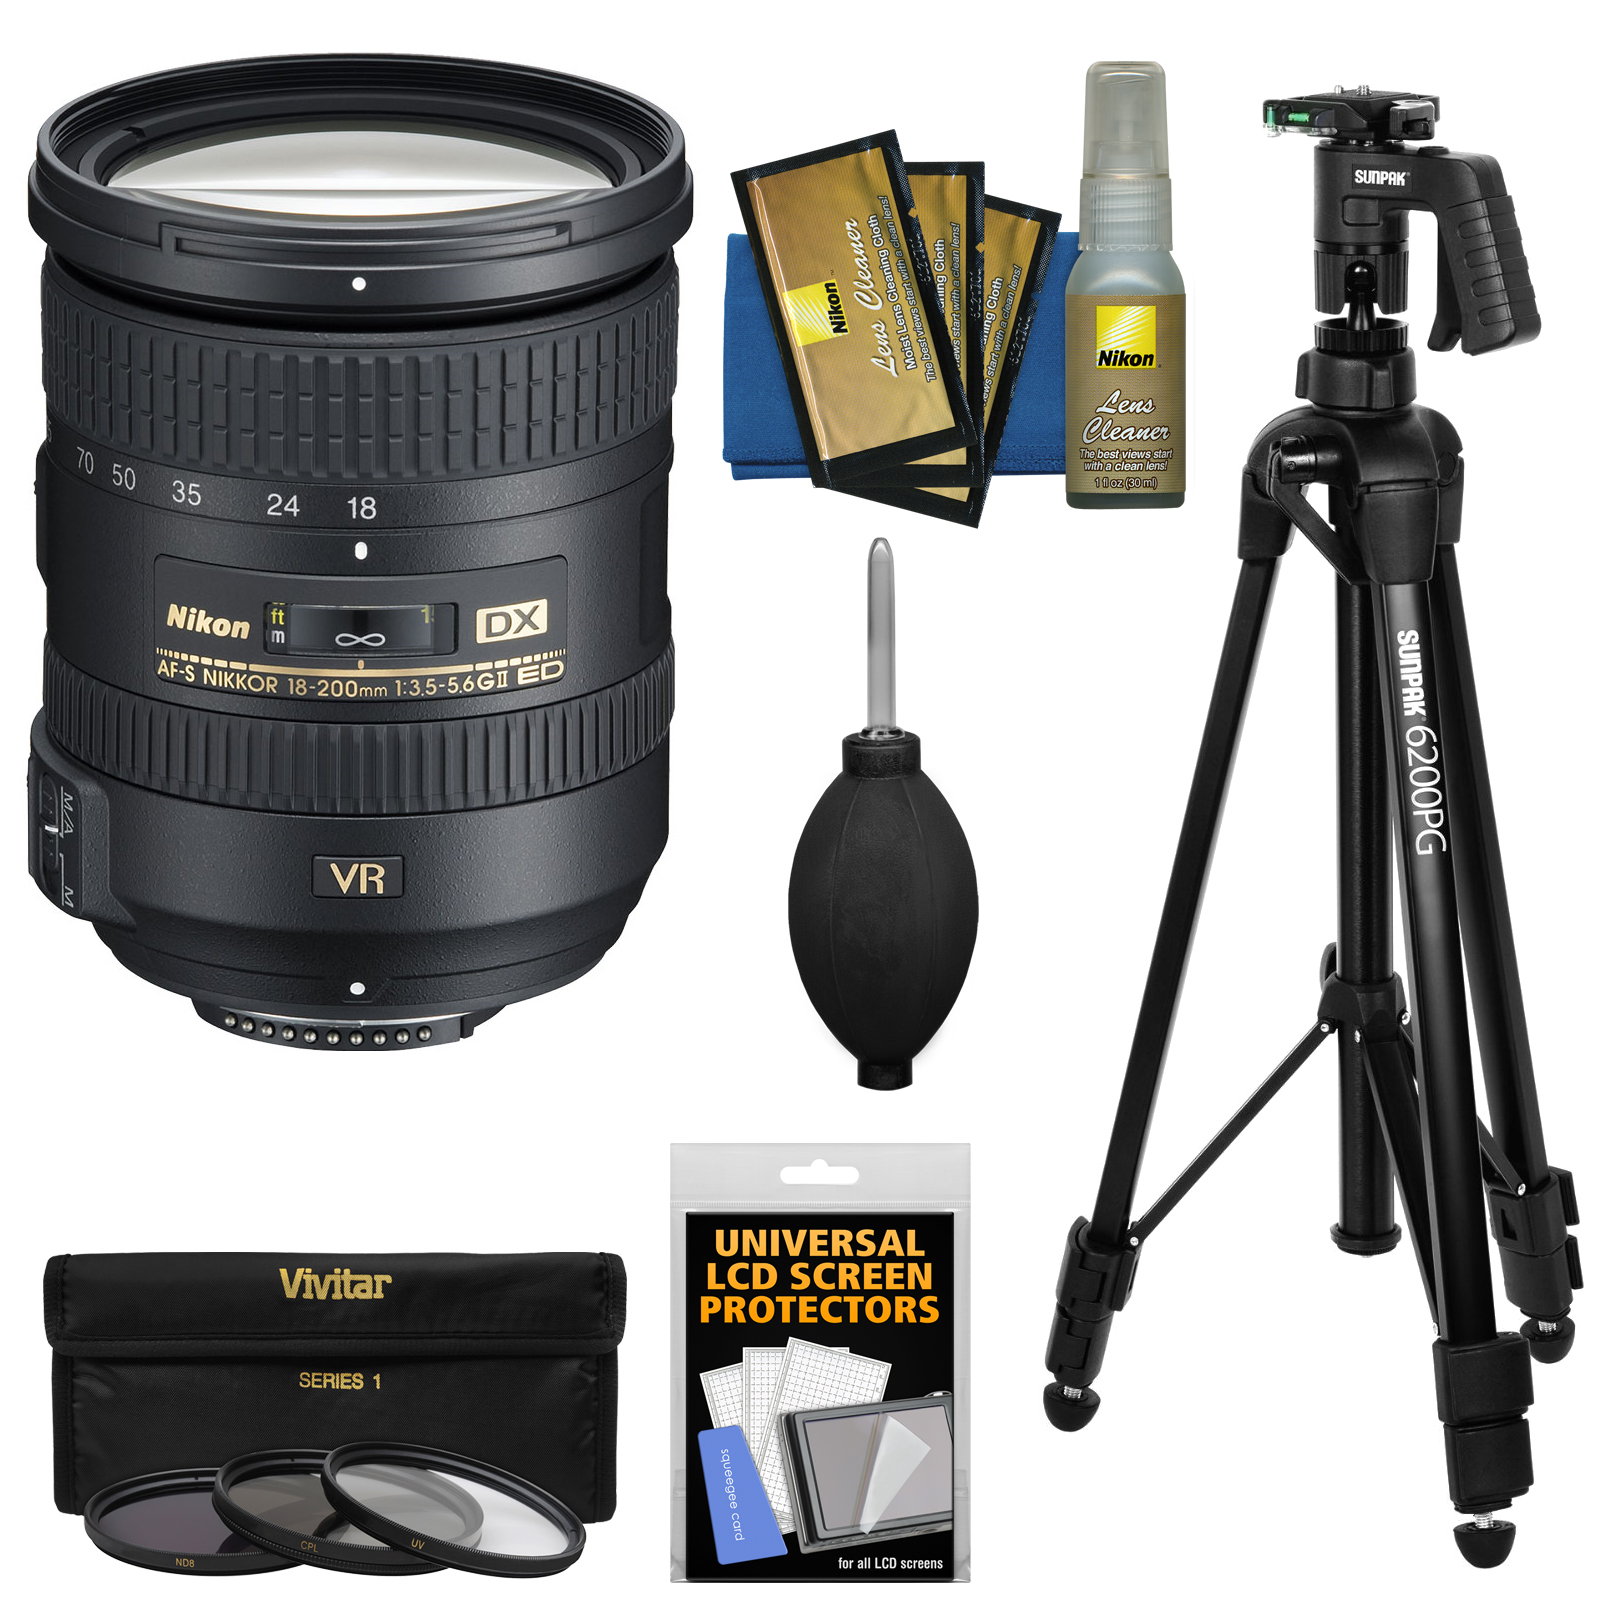 Nikon 18-200mm f/3.5-5.6G VR II DX ED AF-S Nikkor-Zoom Lens + 3 Filters + Pistol Grip Tripod Kit for D3200, D3300, D5300, D5500, D7100, D7200 Camera